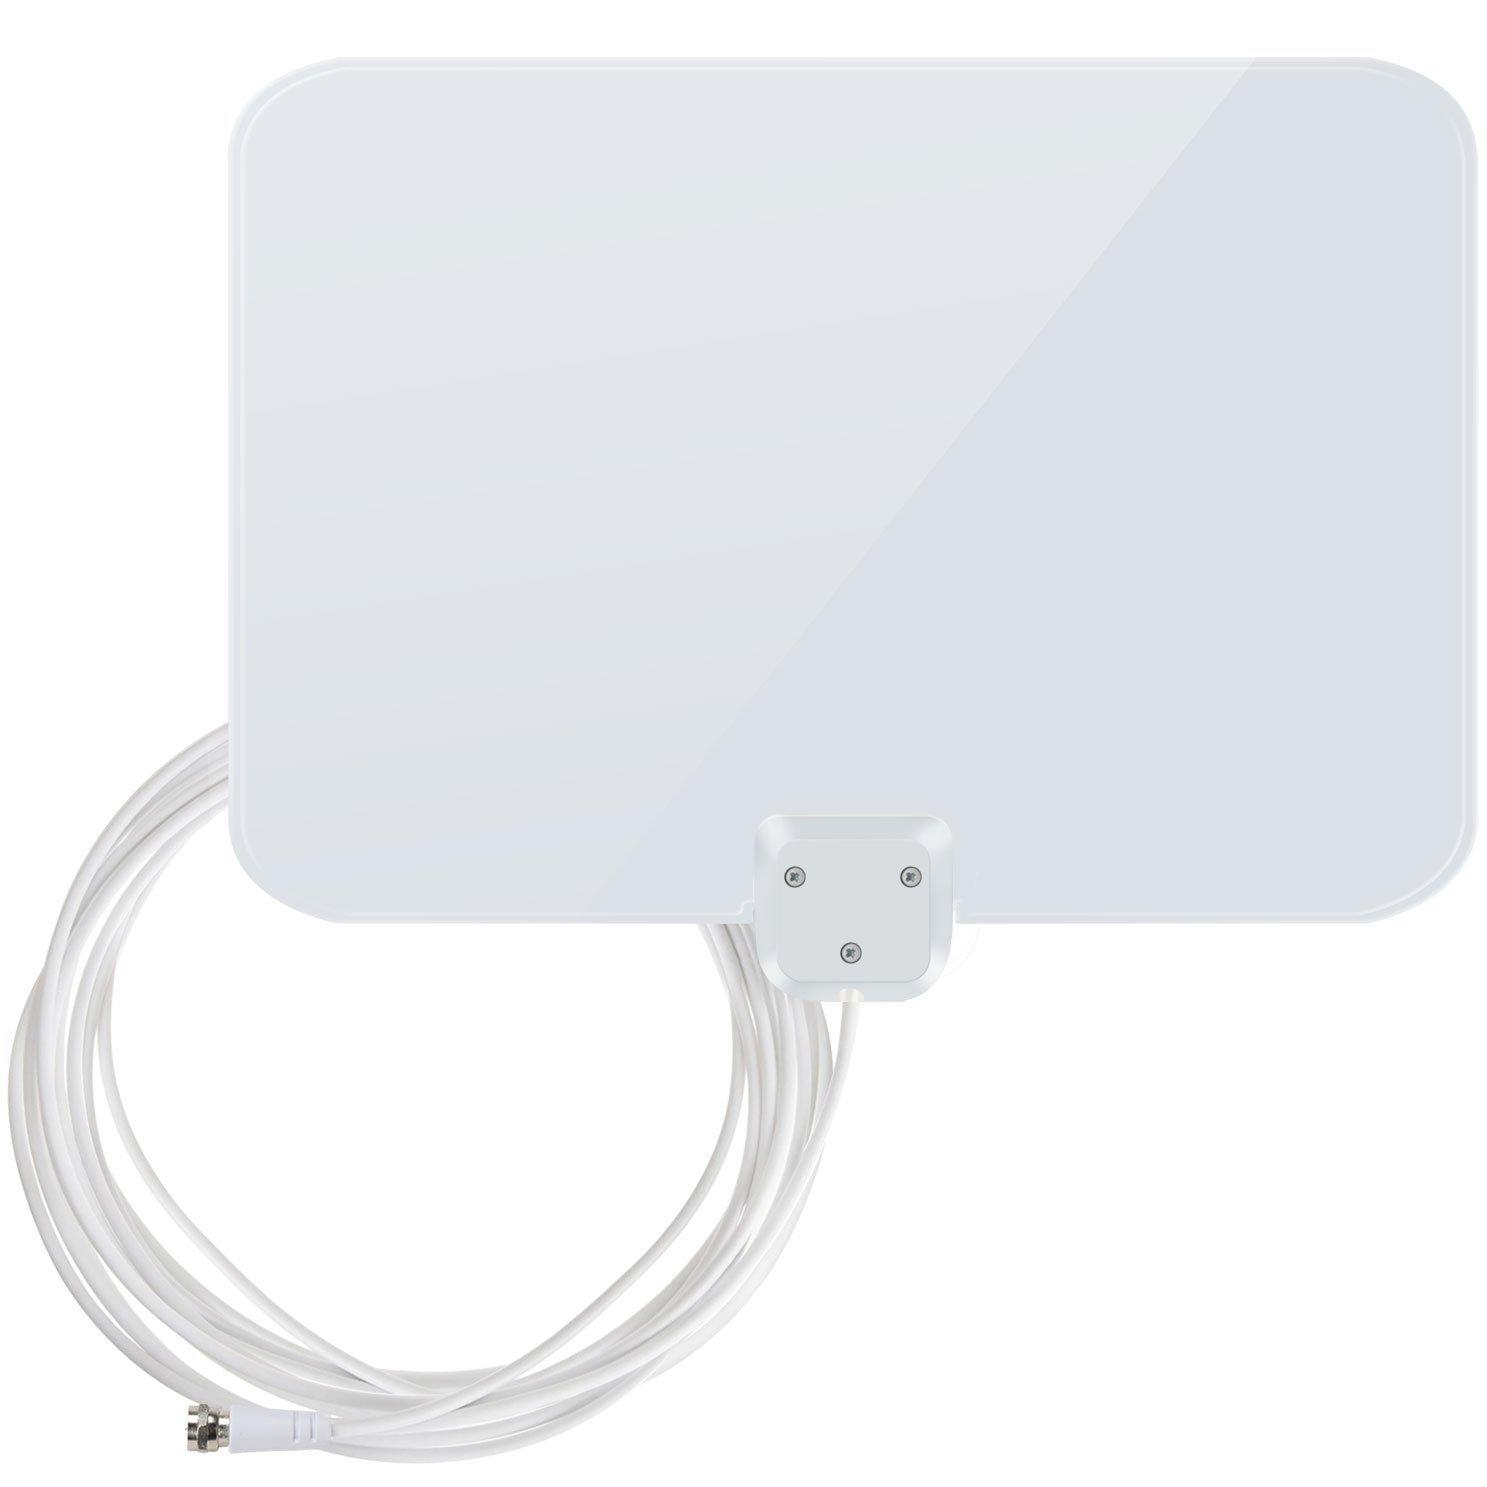 1byone Shiny Antenna Super Thin Amplified HDTV Antenna 50 Miles Range